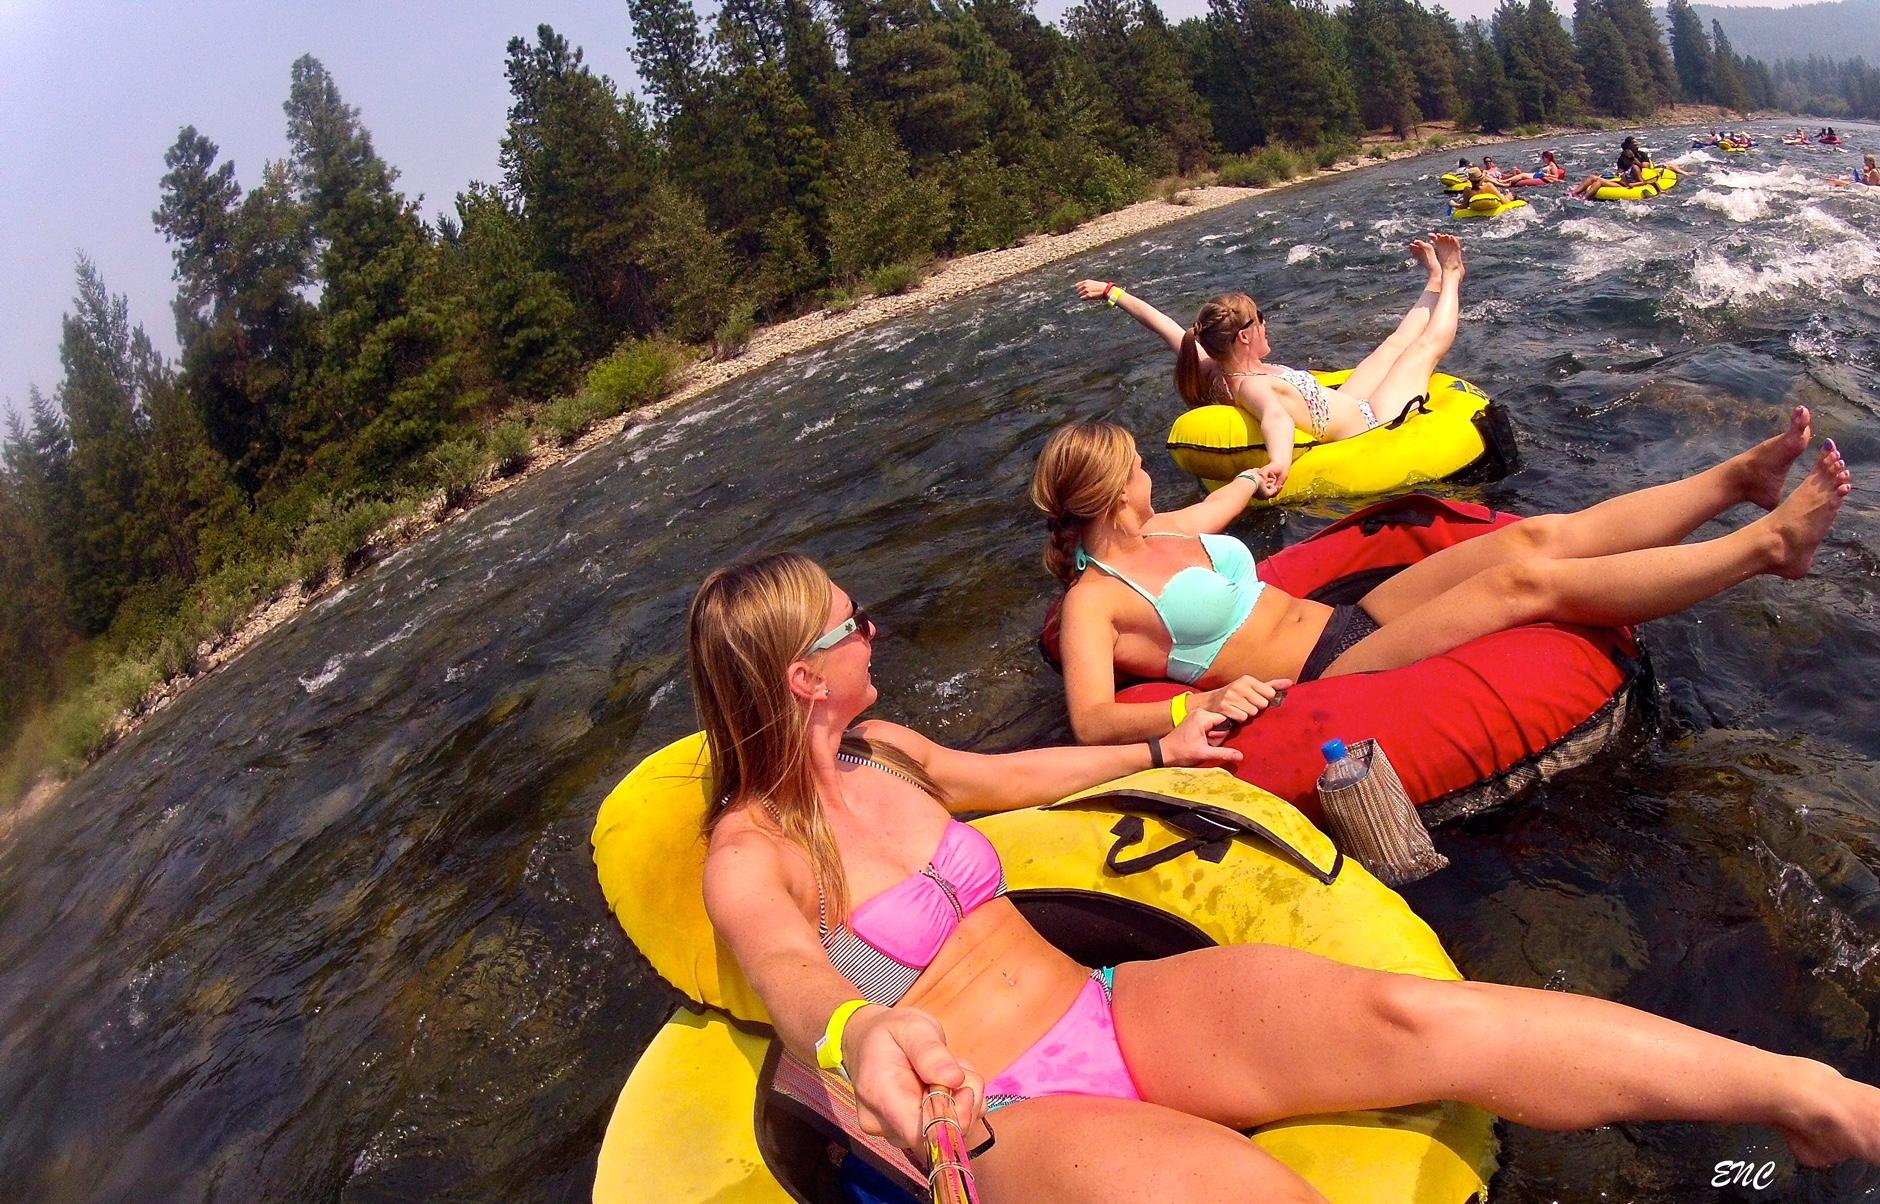 Sound Excursions offers tubing trips all summer long along with other fun adventures such as trips to Oktoberfest and Terrarium making. Prices start at $69 per person. Photo Credit:{ }Sound Excursions